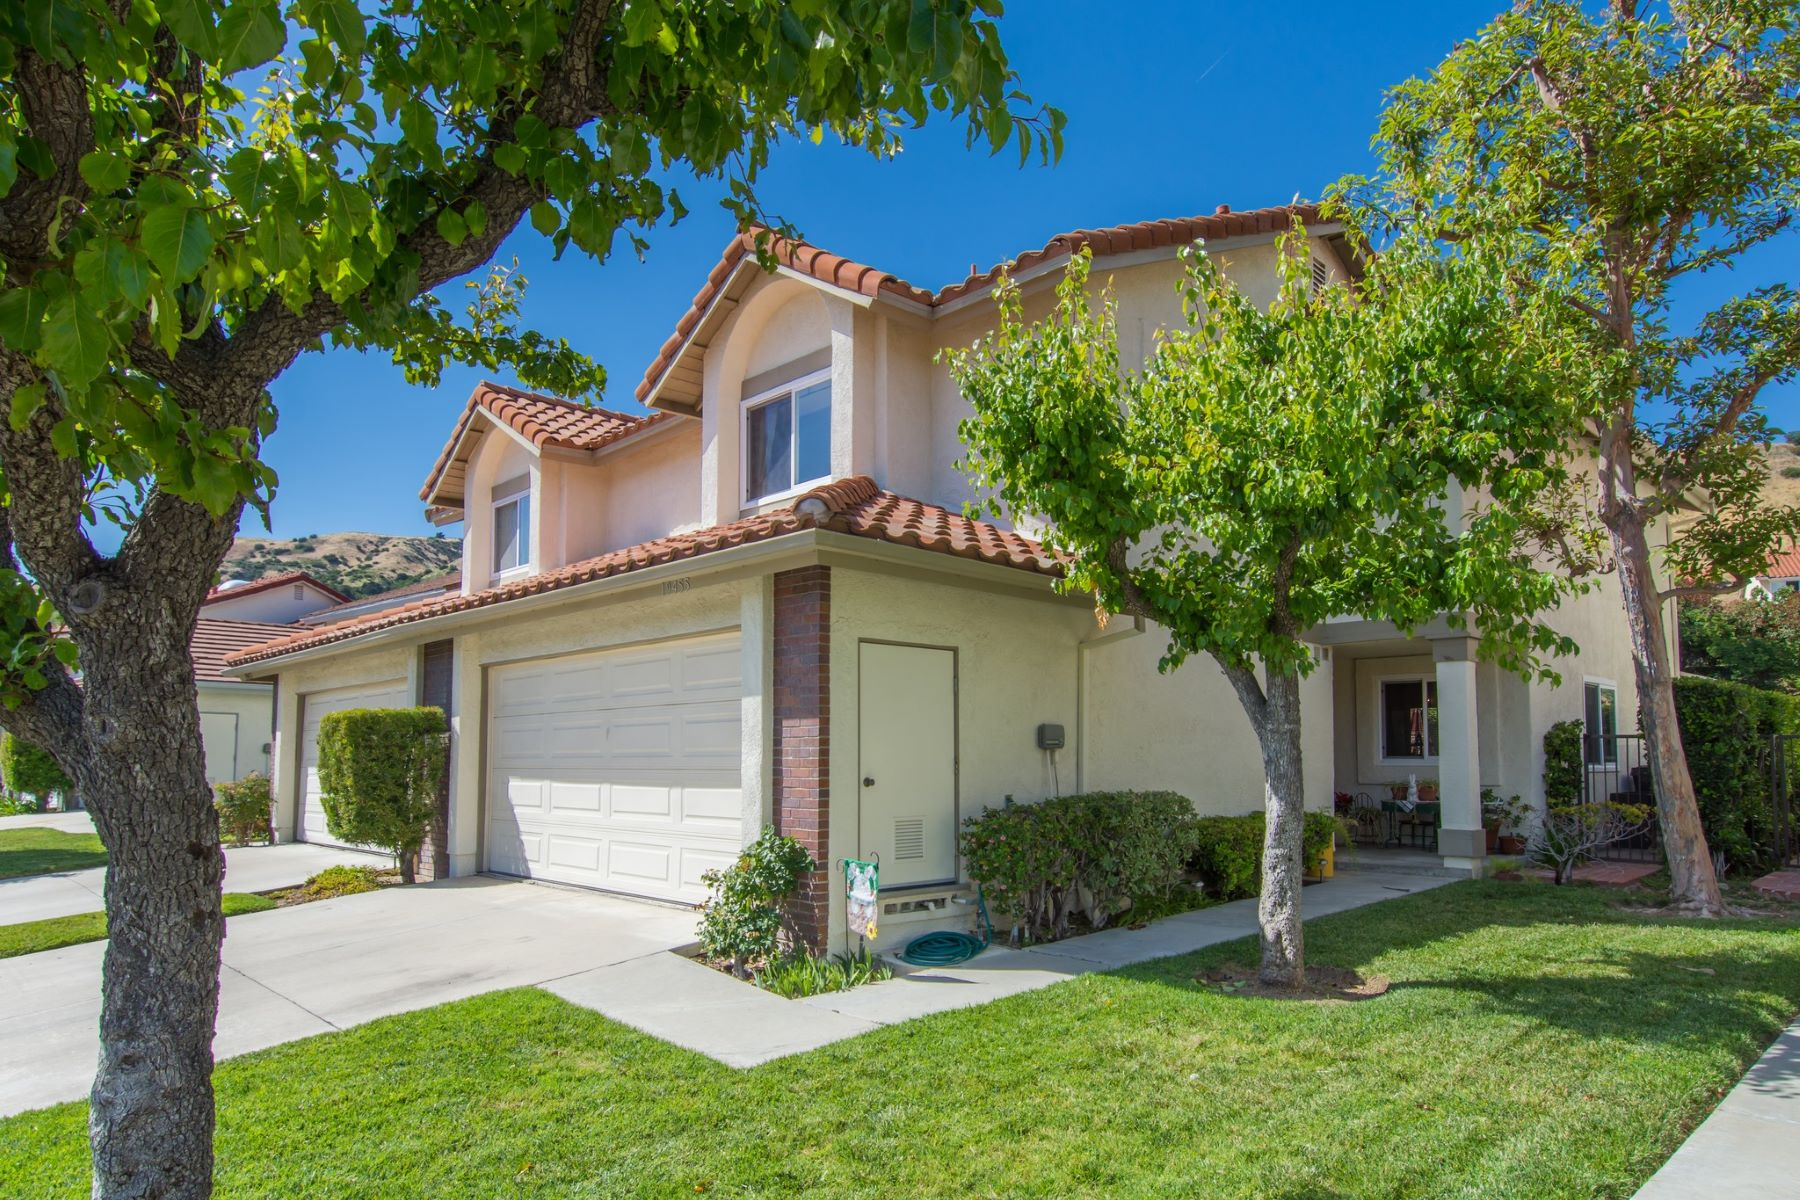 Single Family Home for Sale at 19455 Eagle Ridge Lane Porter Ranch, California, 91326 United States